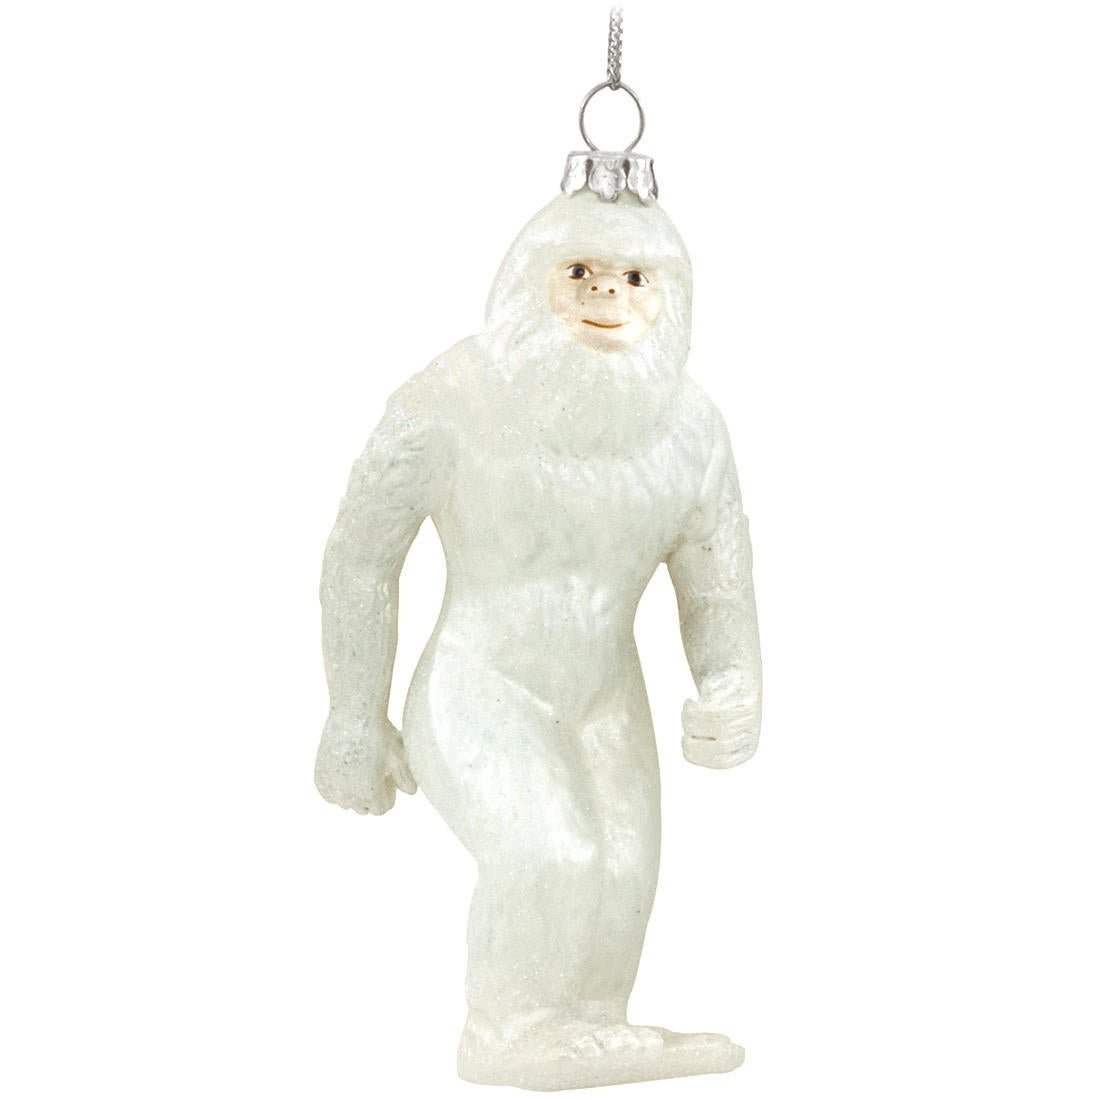 Abominable Snowman Yeti Hanging Glass Christmas Tree Ornament Overstock 9788099